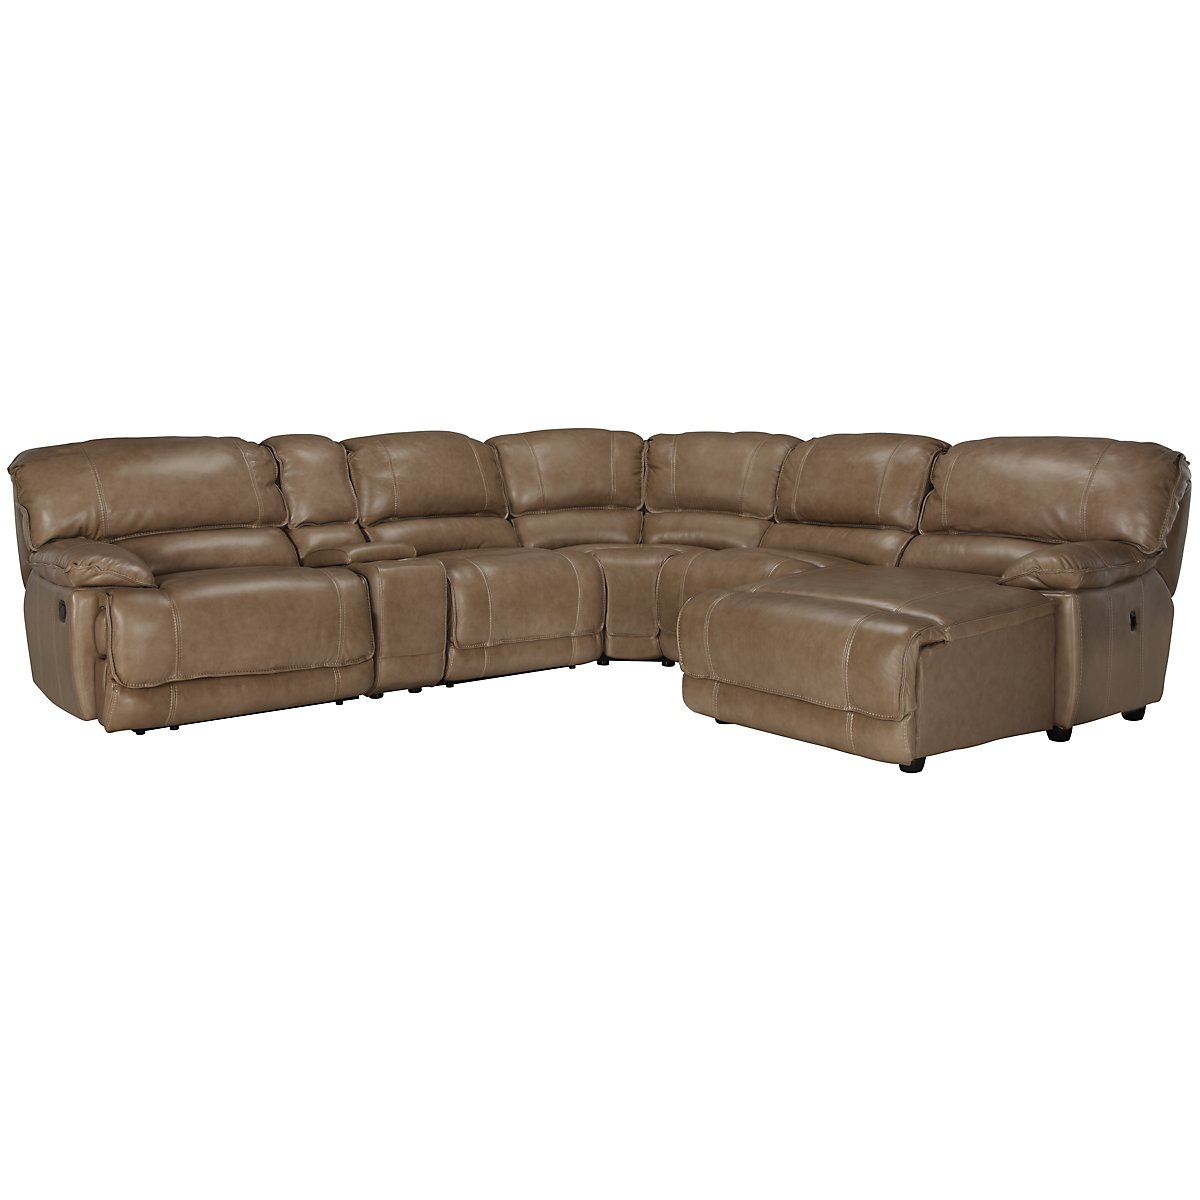 Benson Dark Brown Leather & Vinyl Medium Right Chaise Manual Reclining Sectional